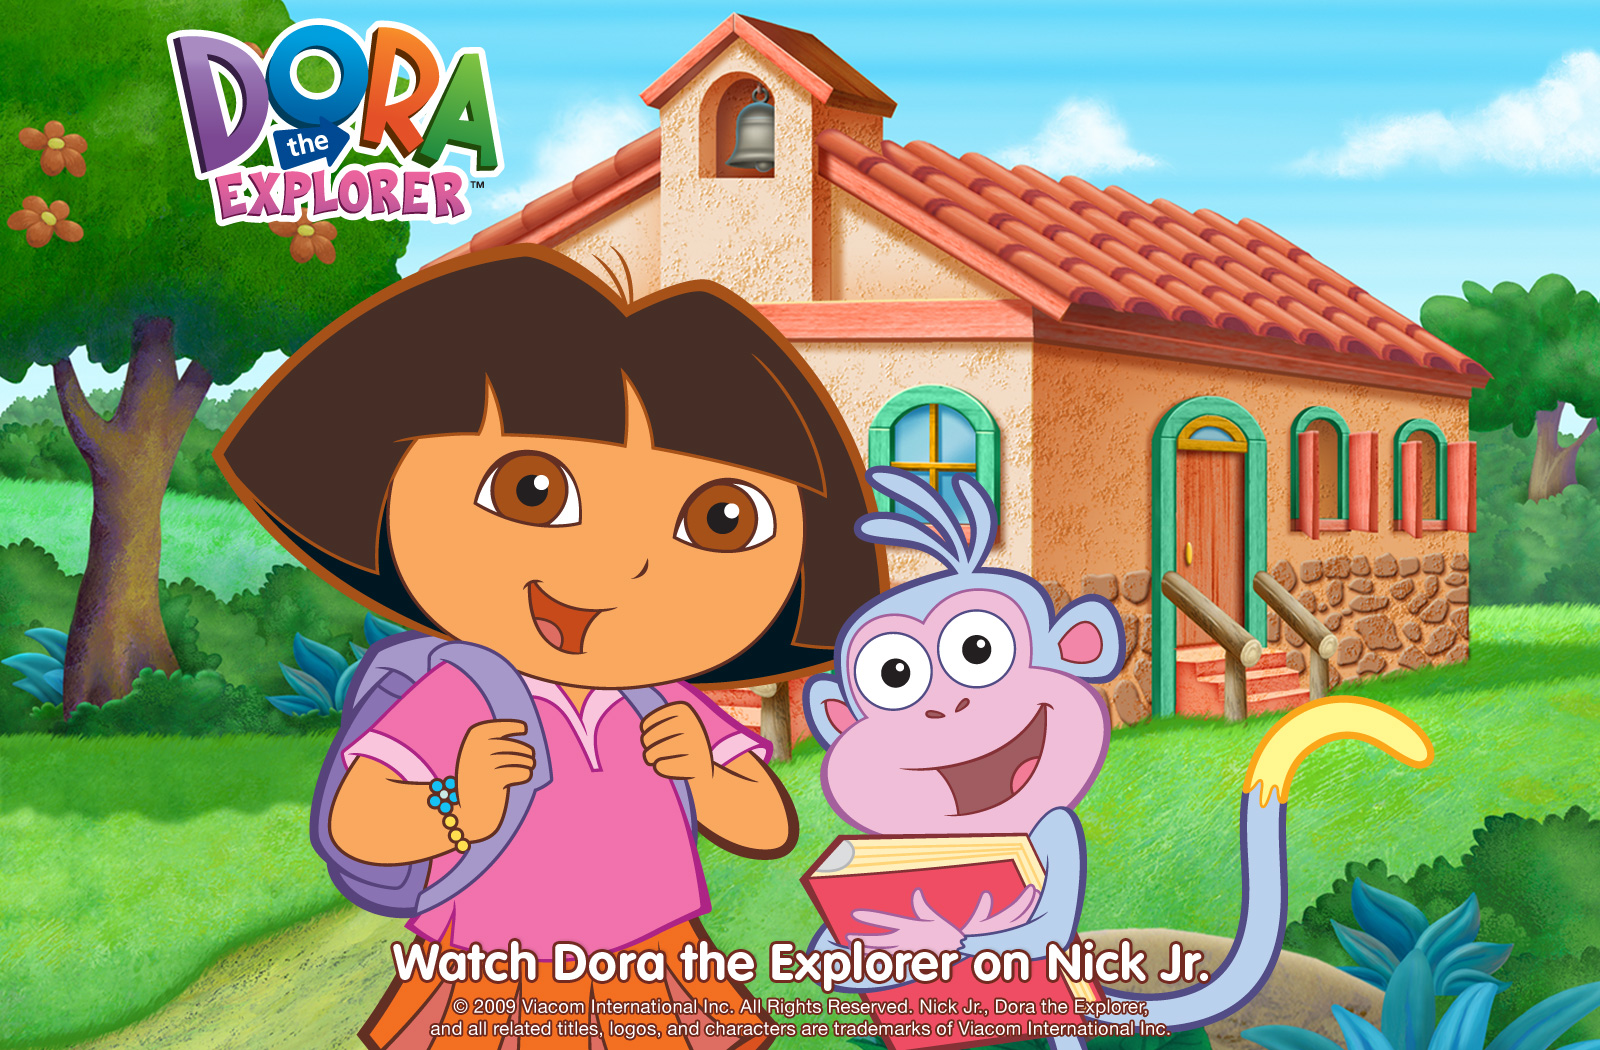 Amazon signs deal with viacom to bring in kid shows from nickelodeon nick jr venturebeat - Tv und mediamobel ...